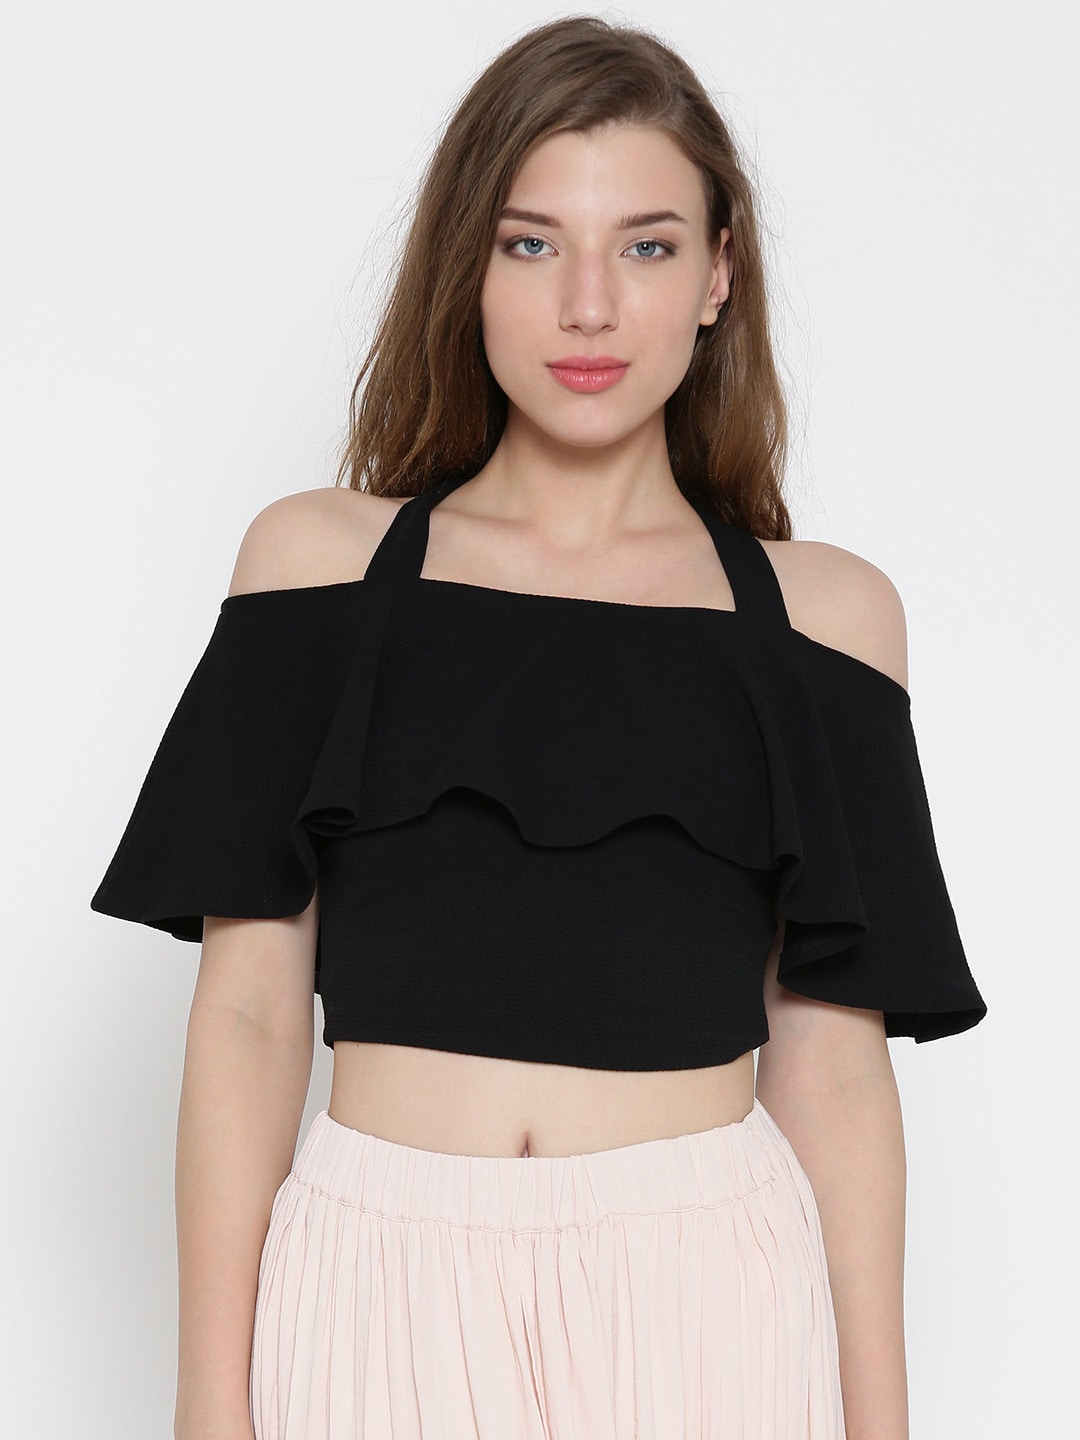 dea6ddcfac8b71 Crop Tops - Buy Midriff Crop Tops Online for Women in India